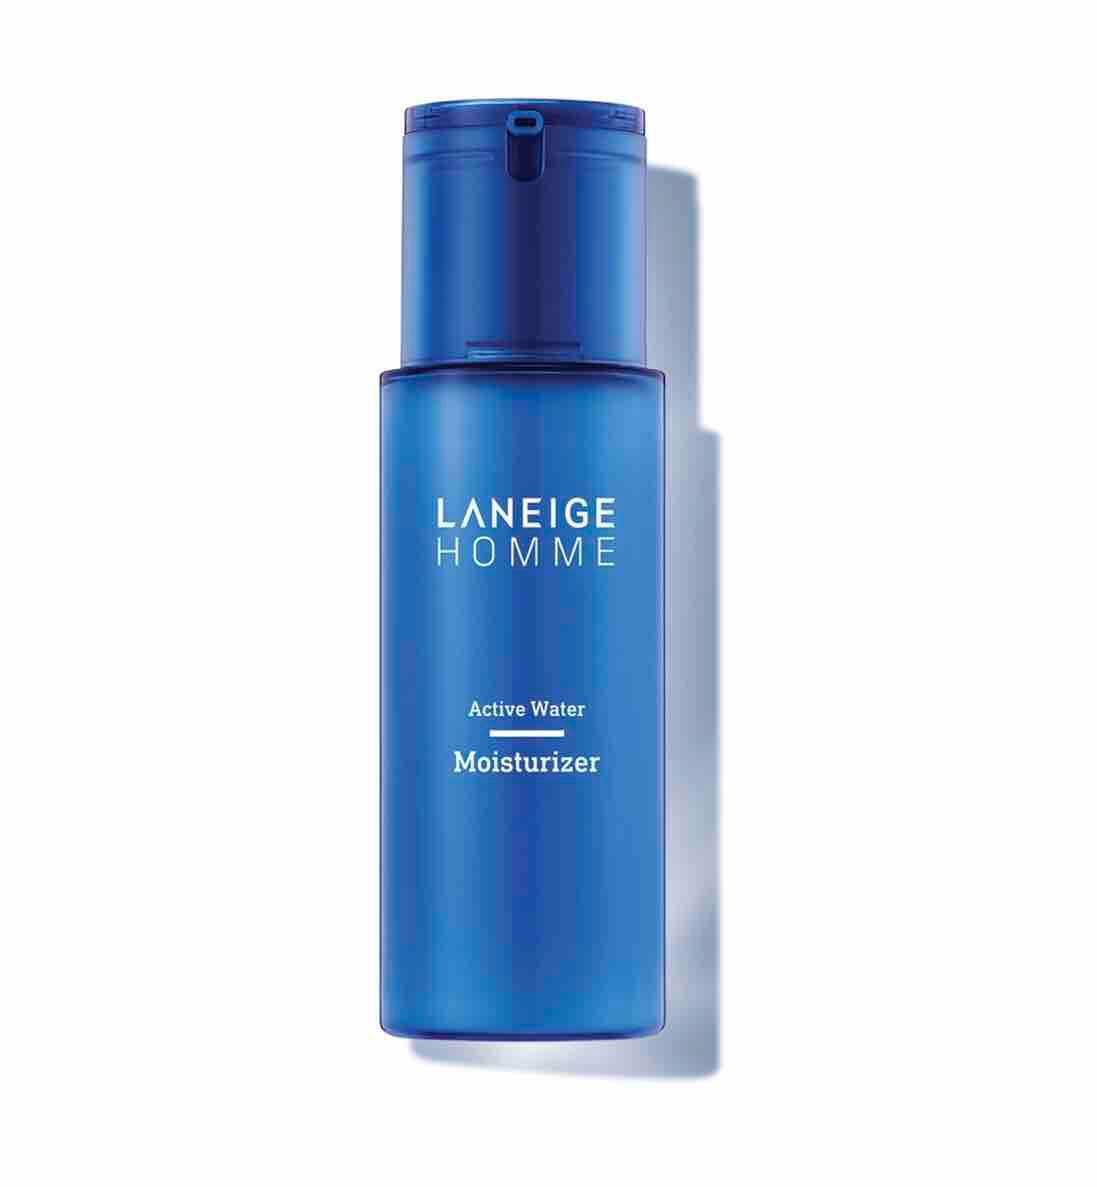 Laneige Homme Active Water Moisturizer 125ml - Men By Jan.sg.